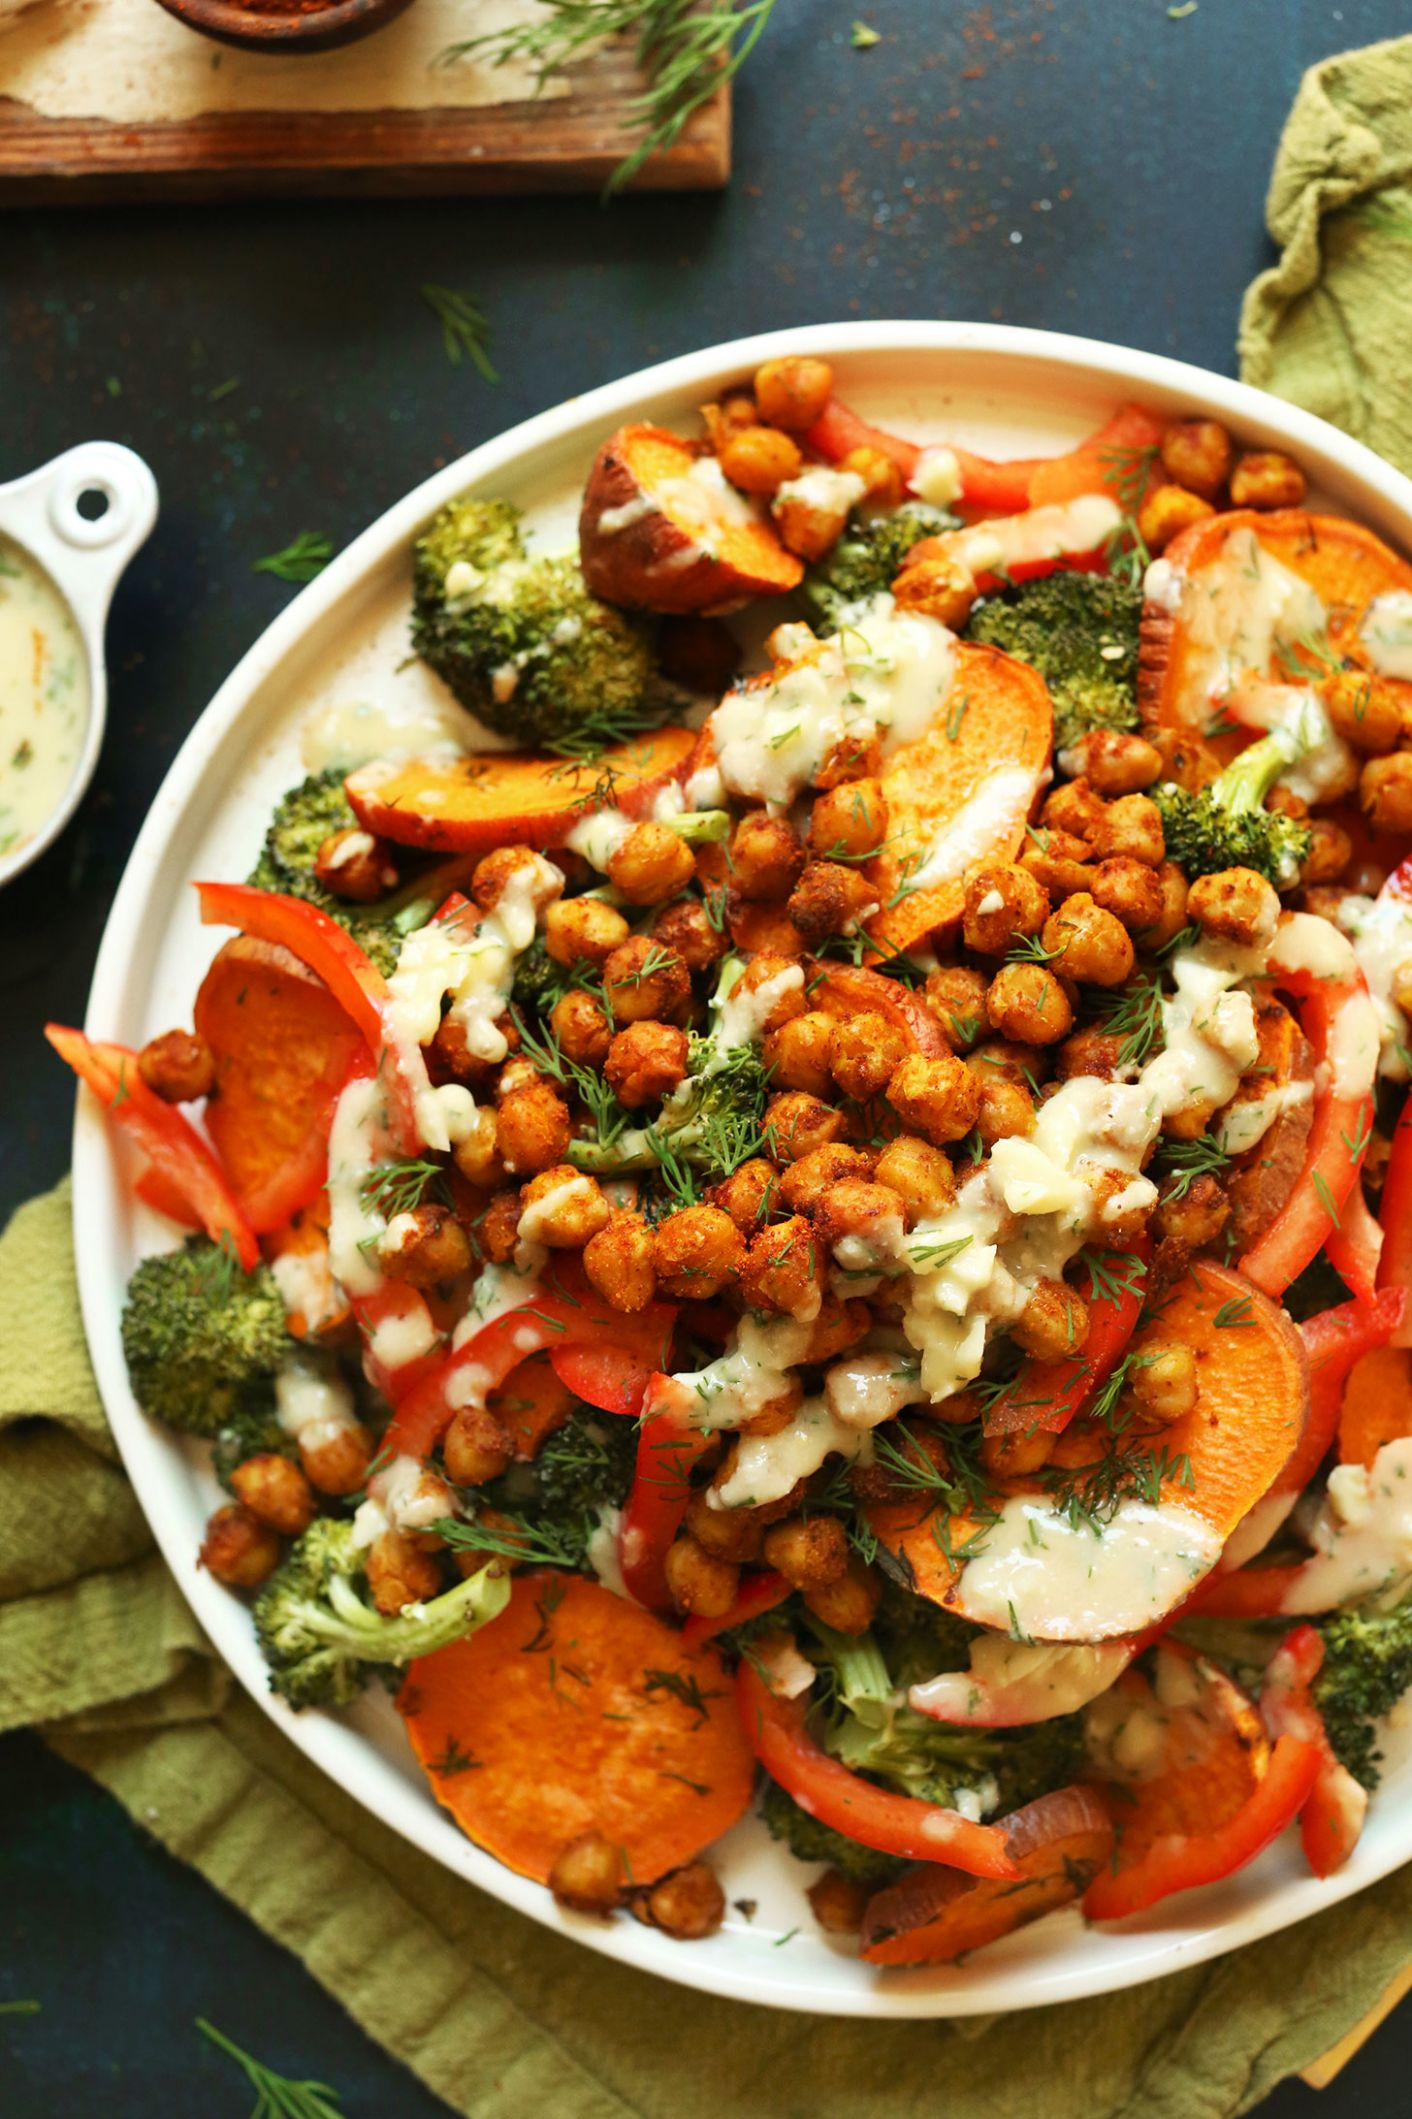 Roasted Broccoli Sweet Potato Chickpea Salad - Salad Recipes Veg For Dinner